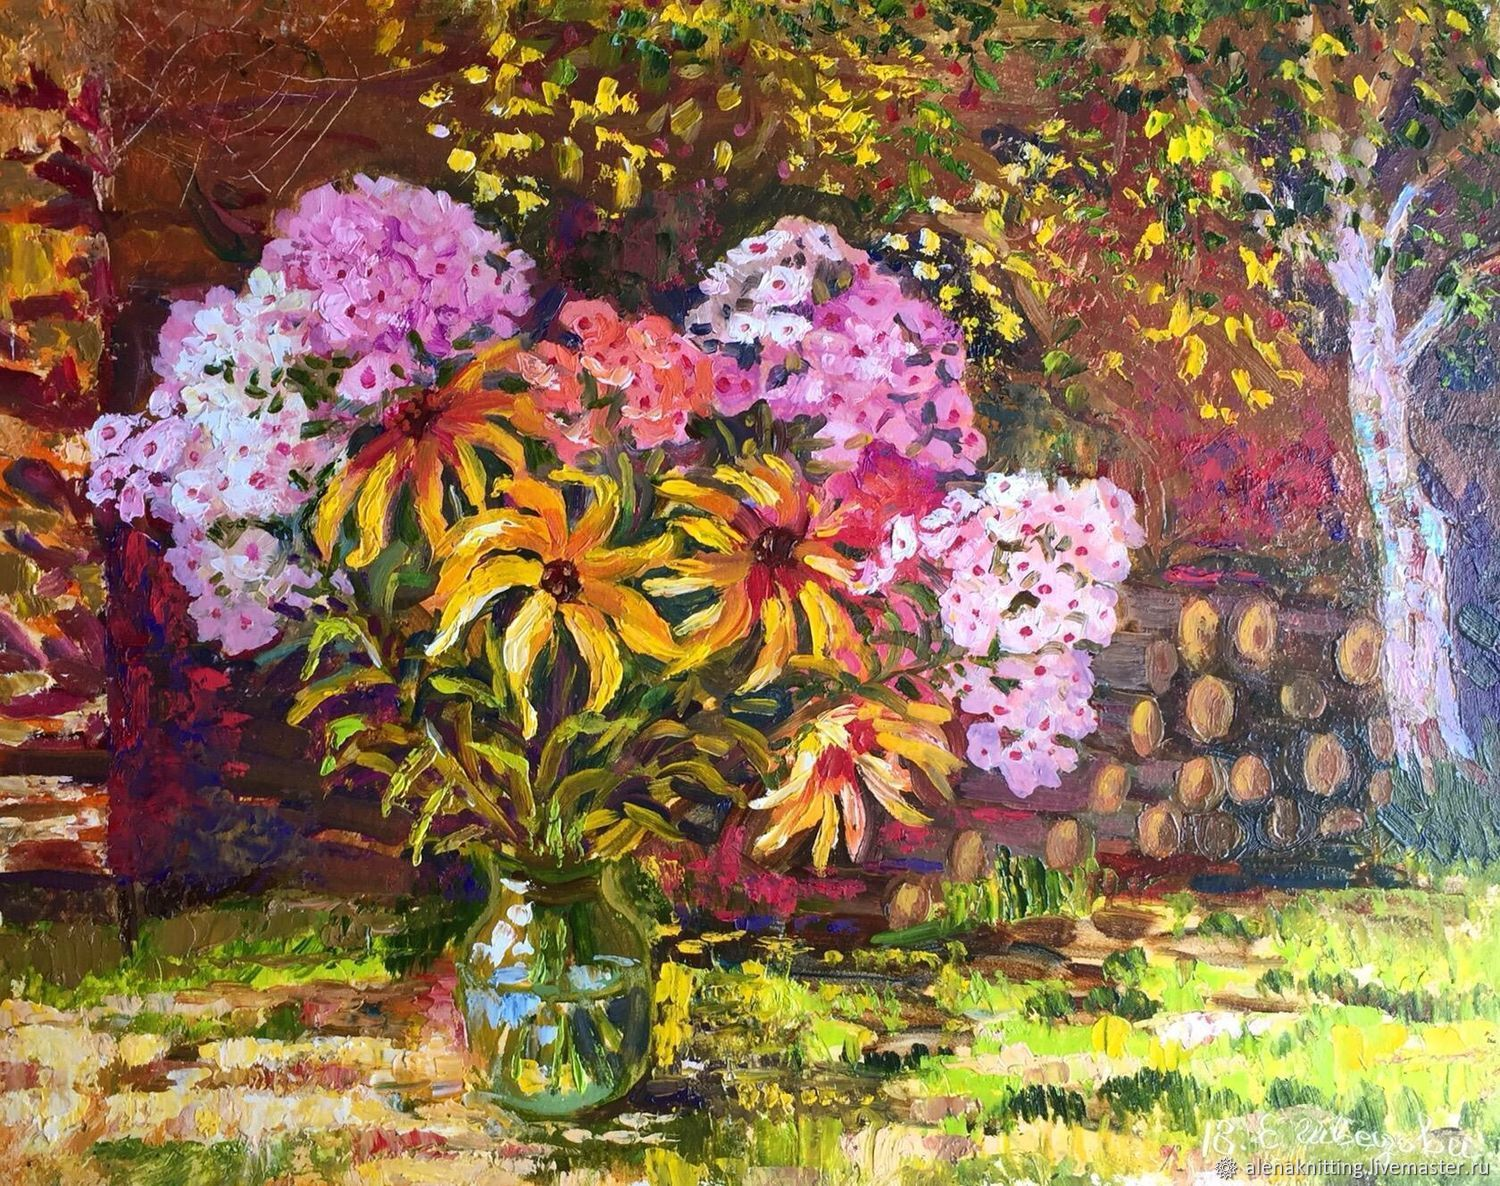 Oil painting 'Summer and bright', Pictures, Moscow,  Фото №1